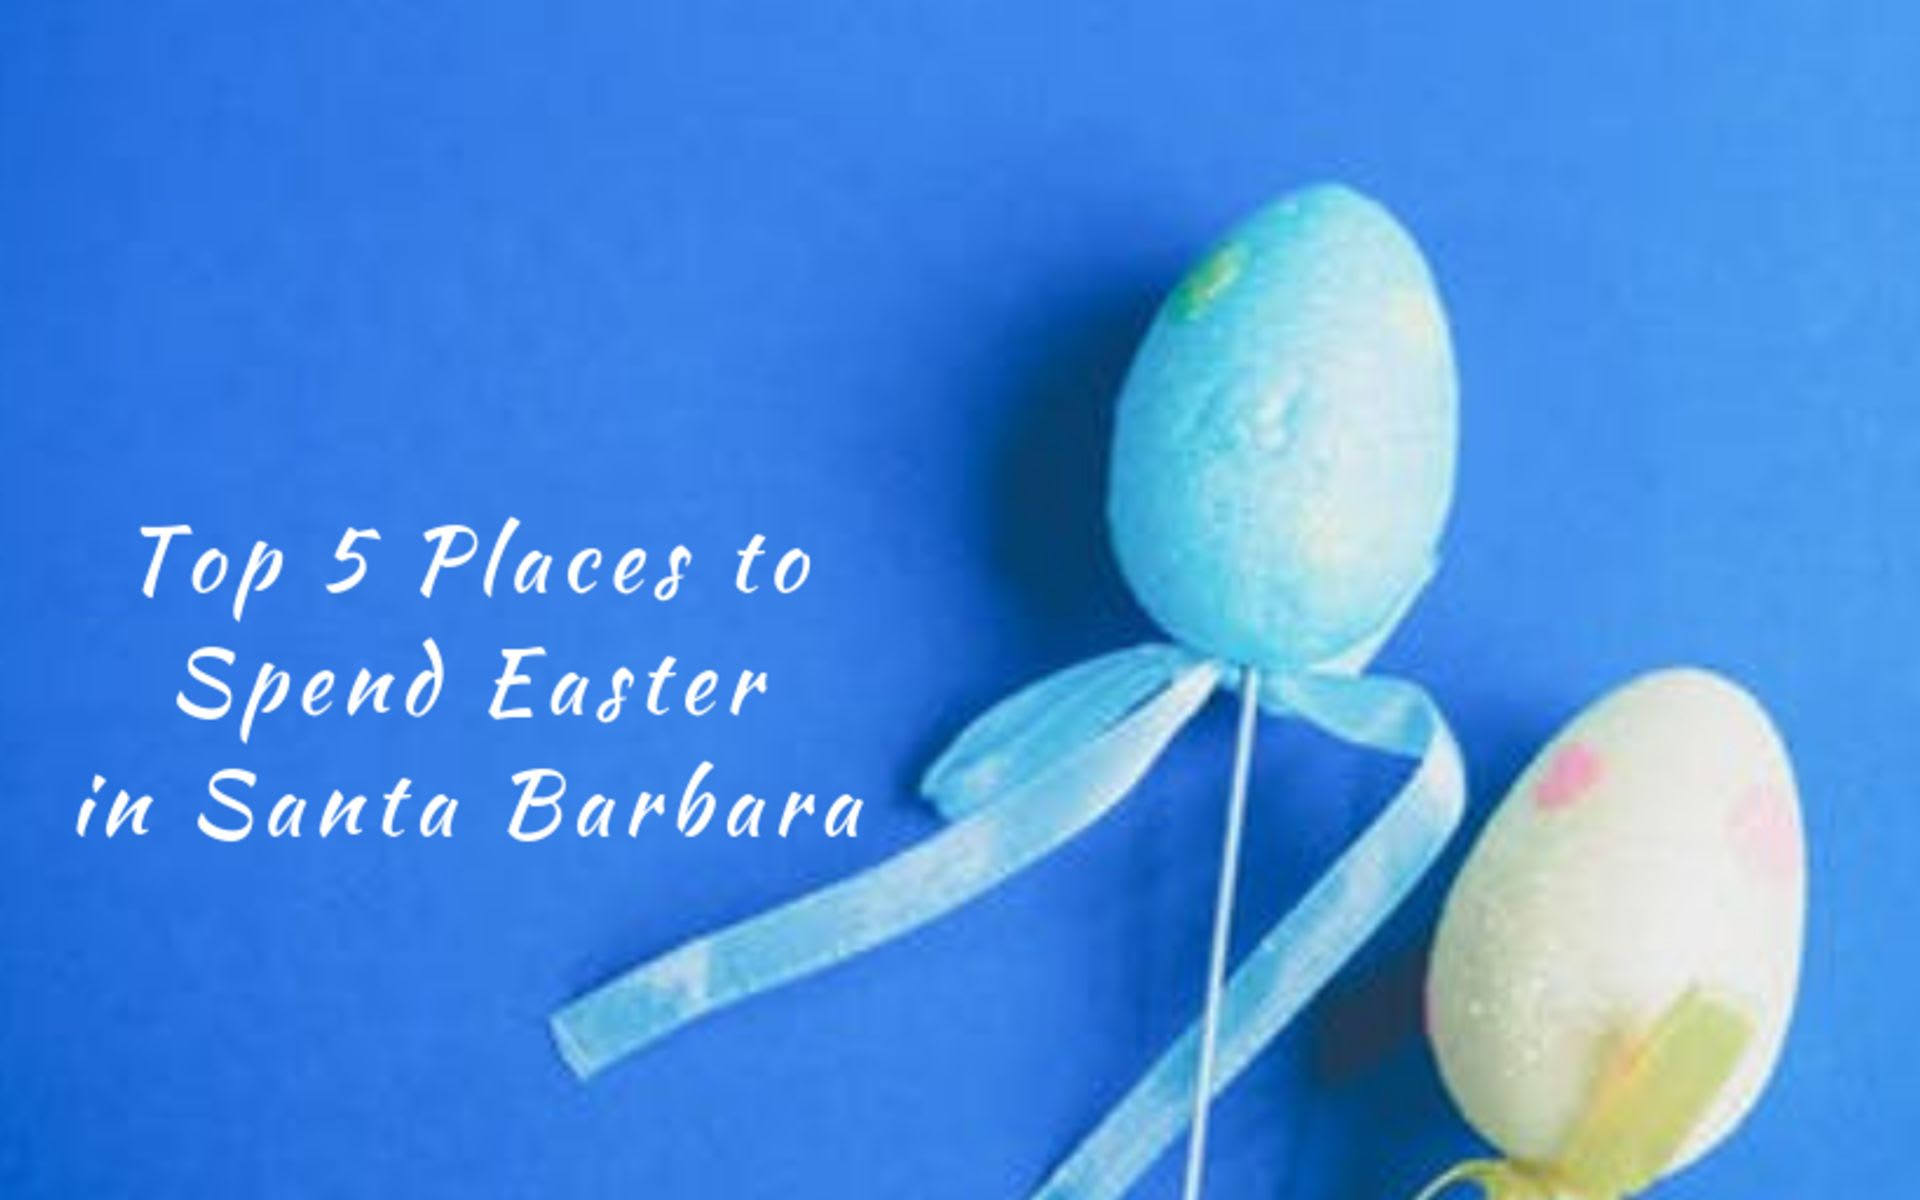 Top 5 Places to Spend Easter in Santa Barbara